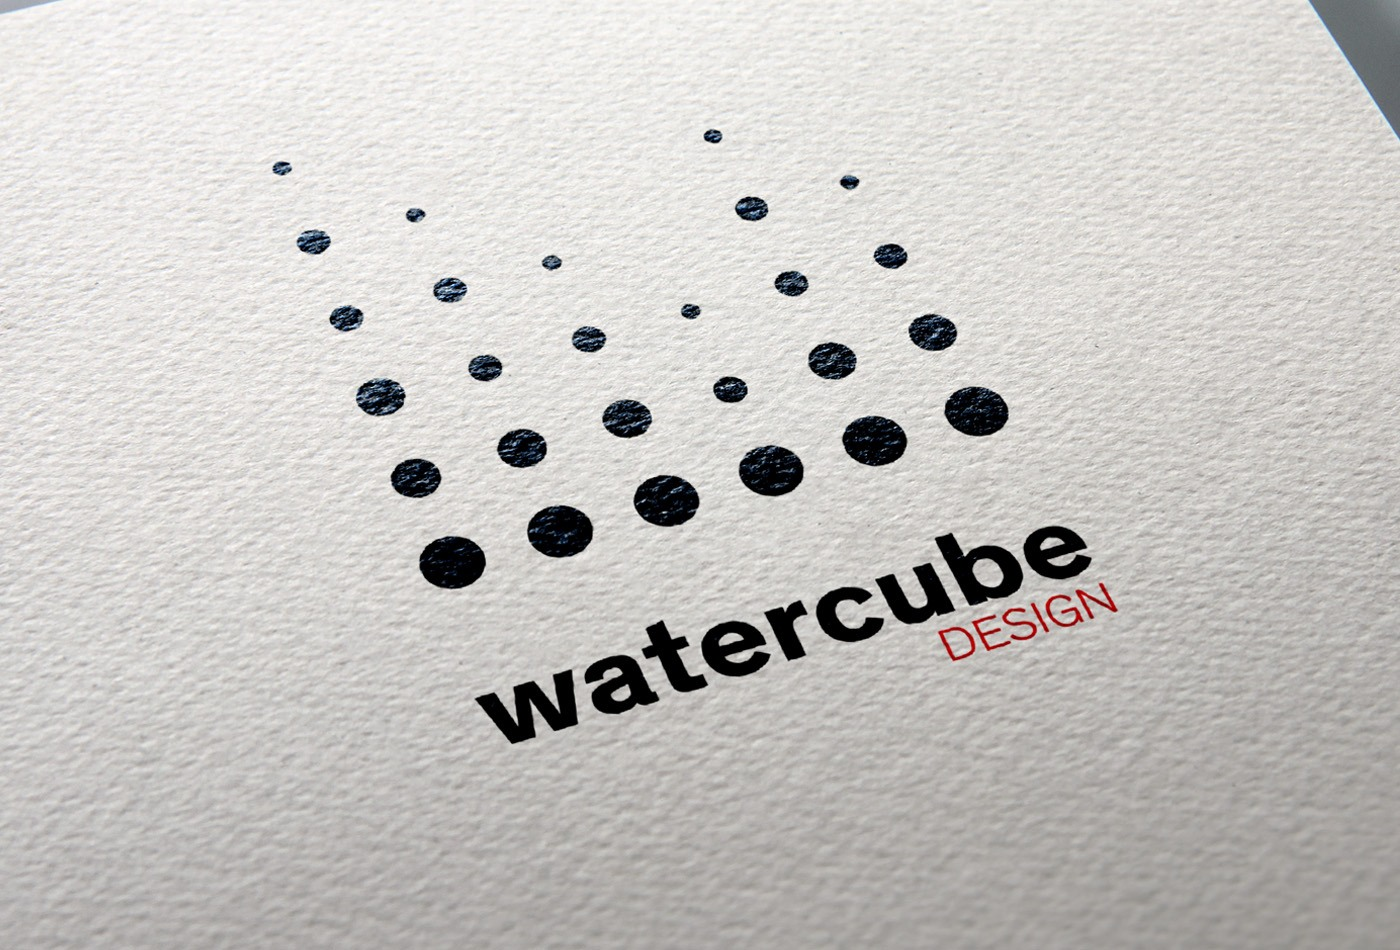 Watercube design logo